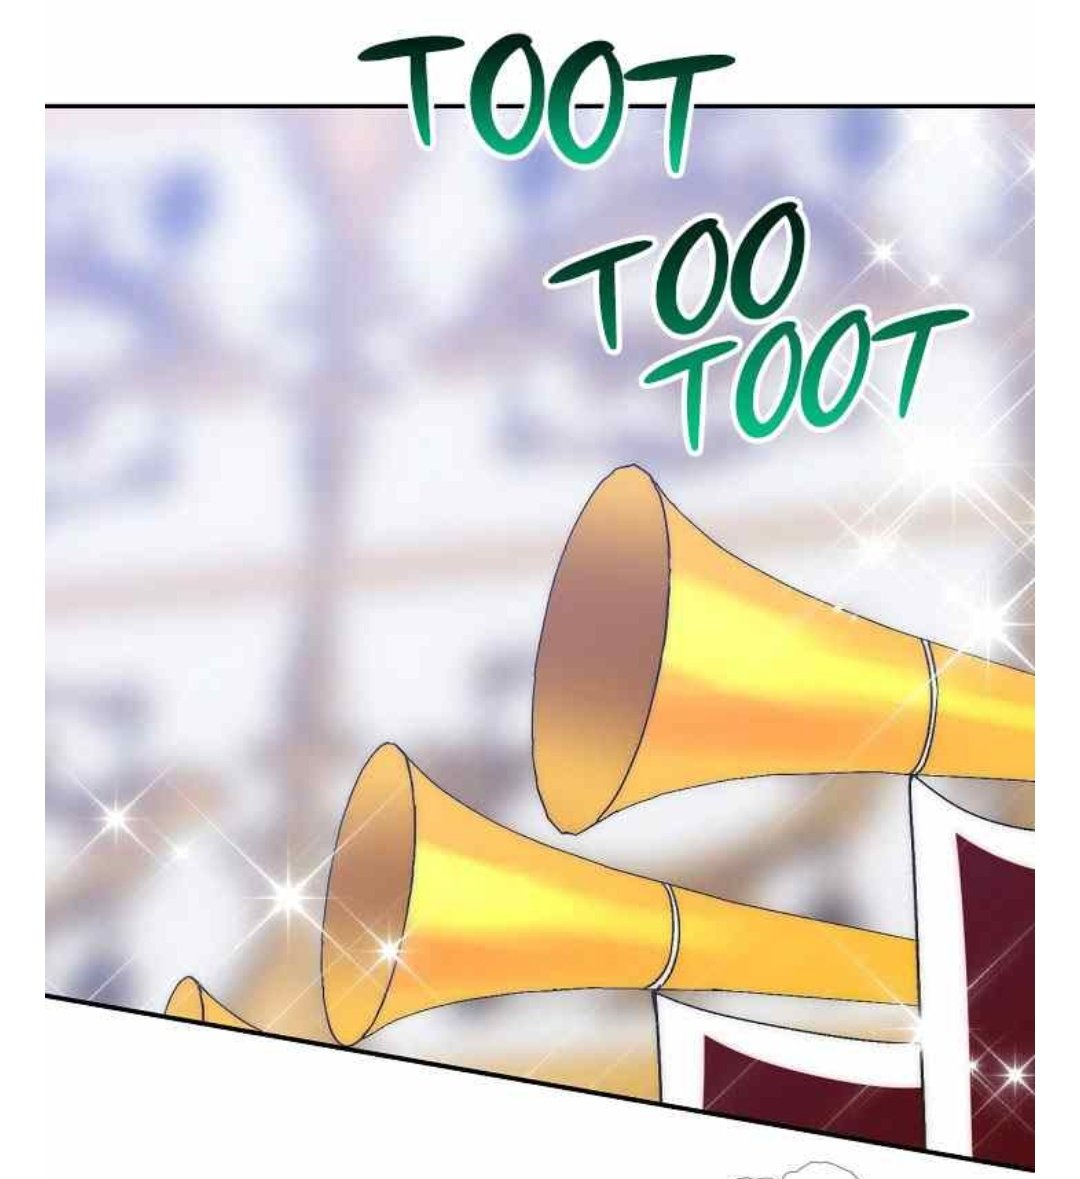 Have others toot your horn